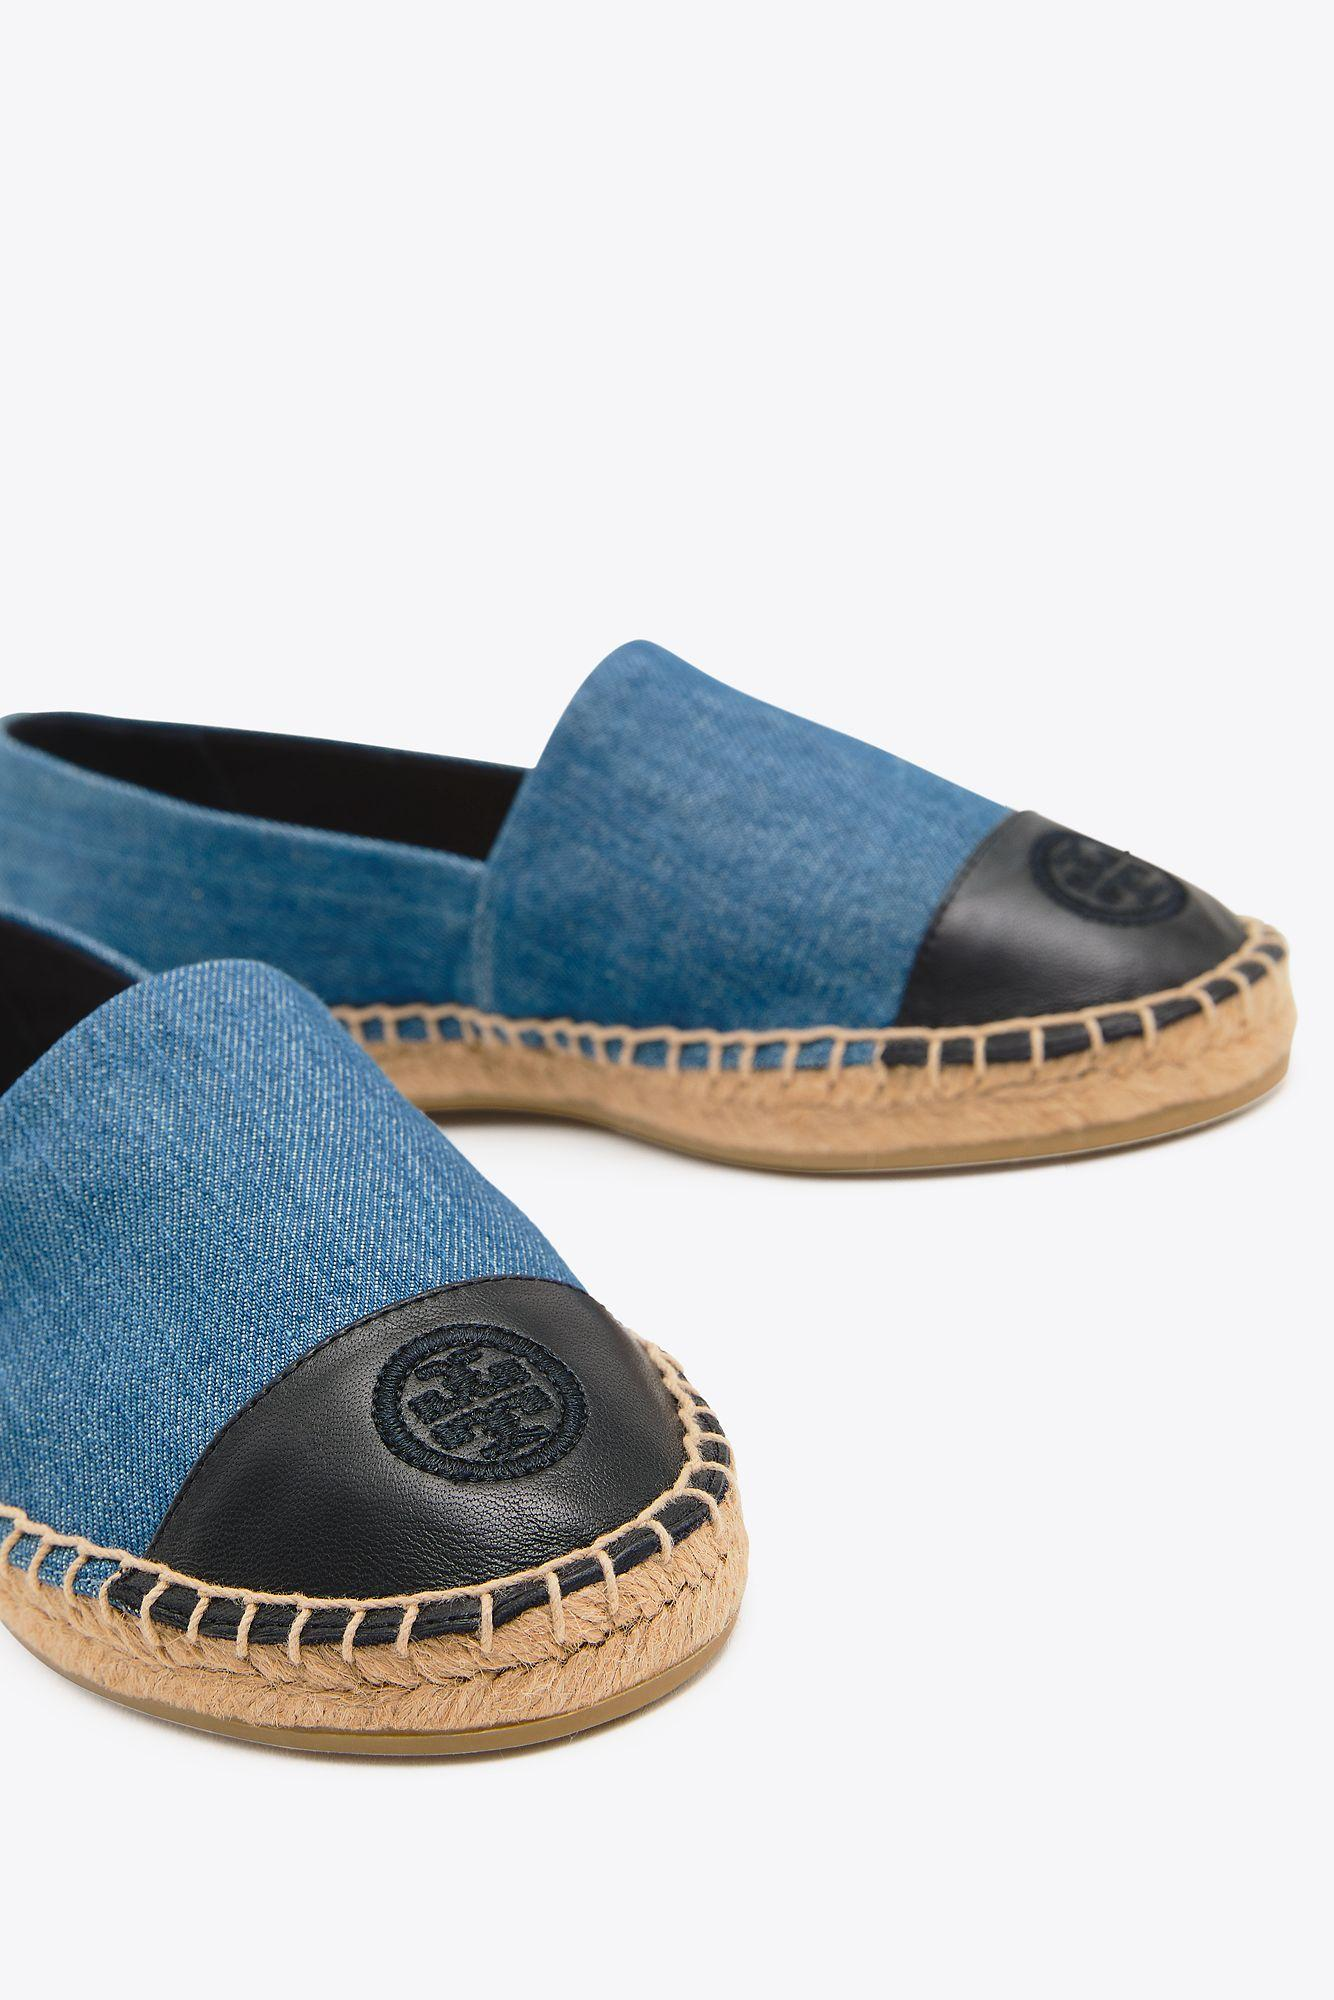 f4f6bc8c256ca Tory Burch - Blue Color Block Flat Espadrille (denim Chambray) Women s Shoes  - Lyst. View fullscreen